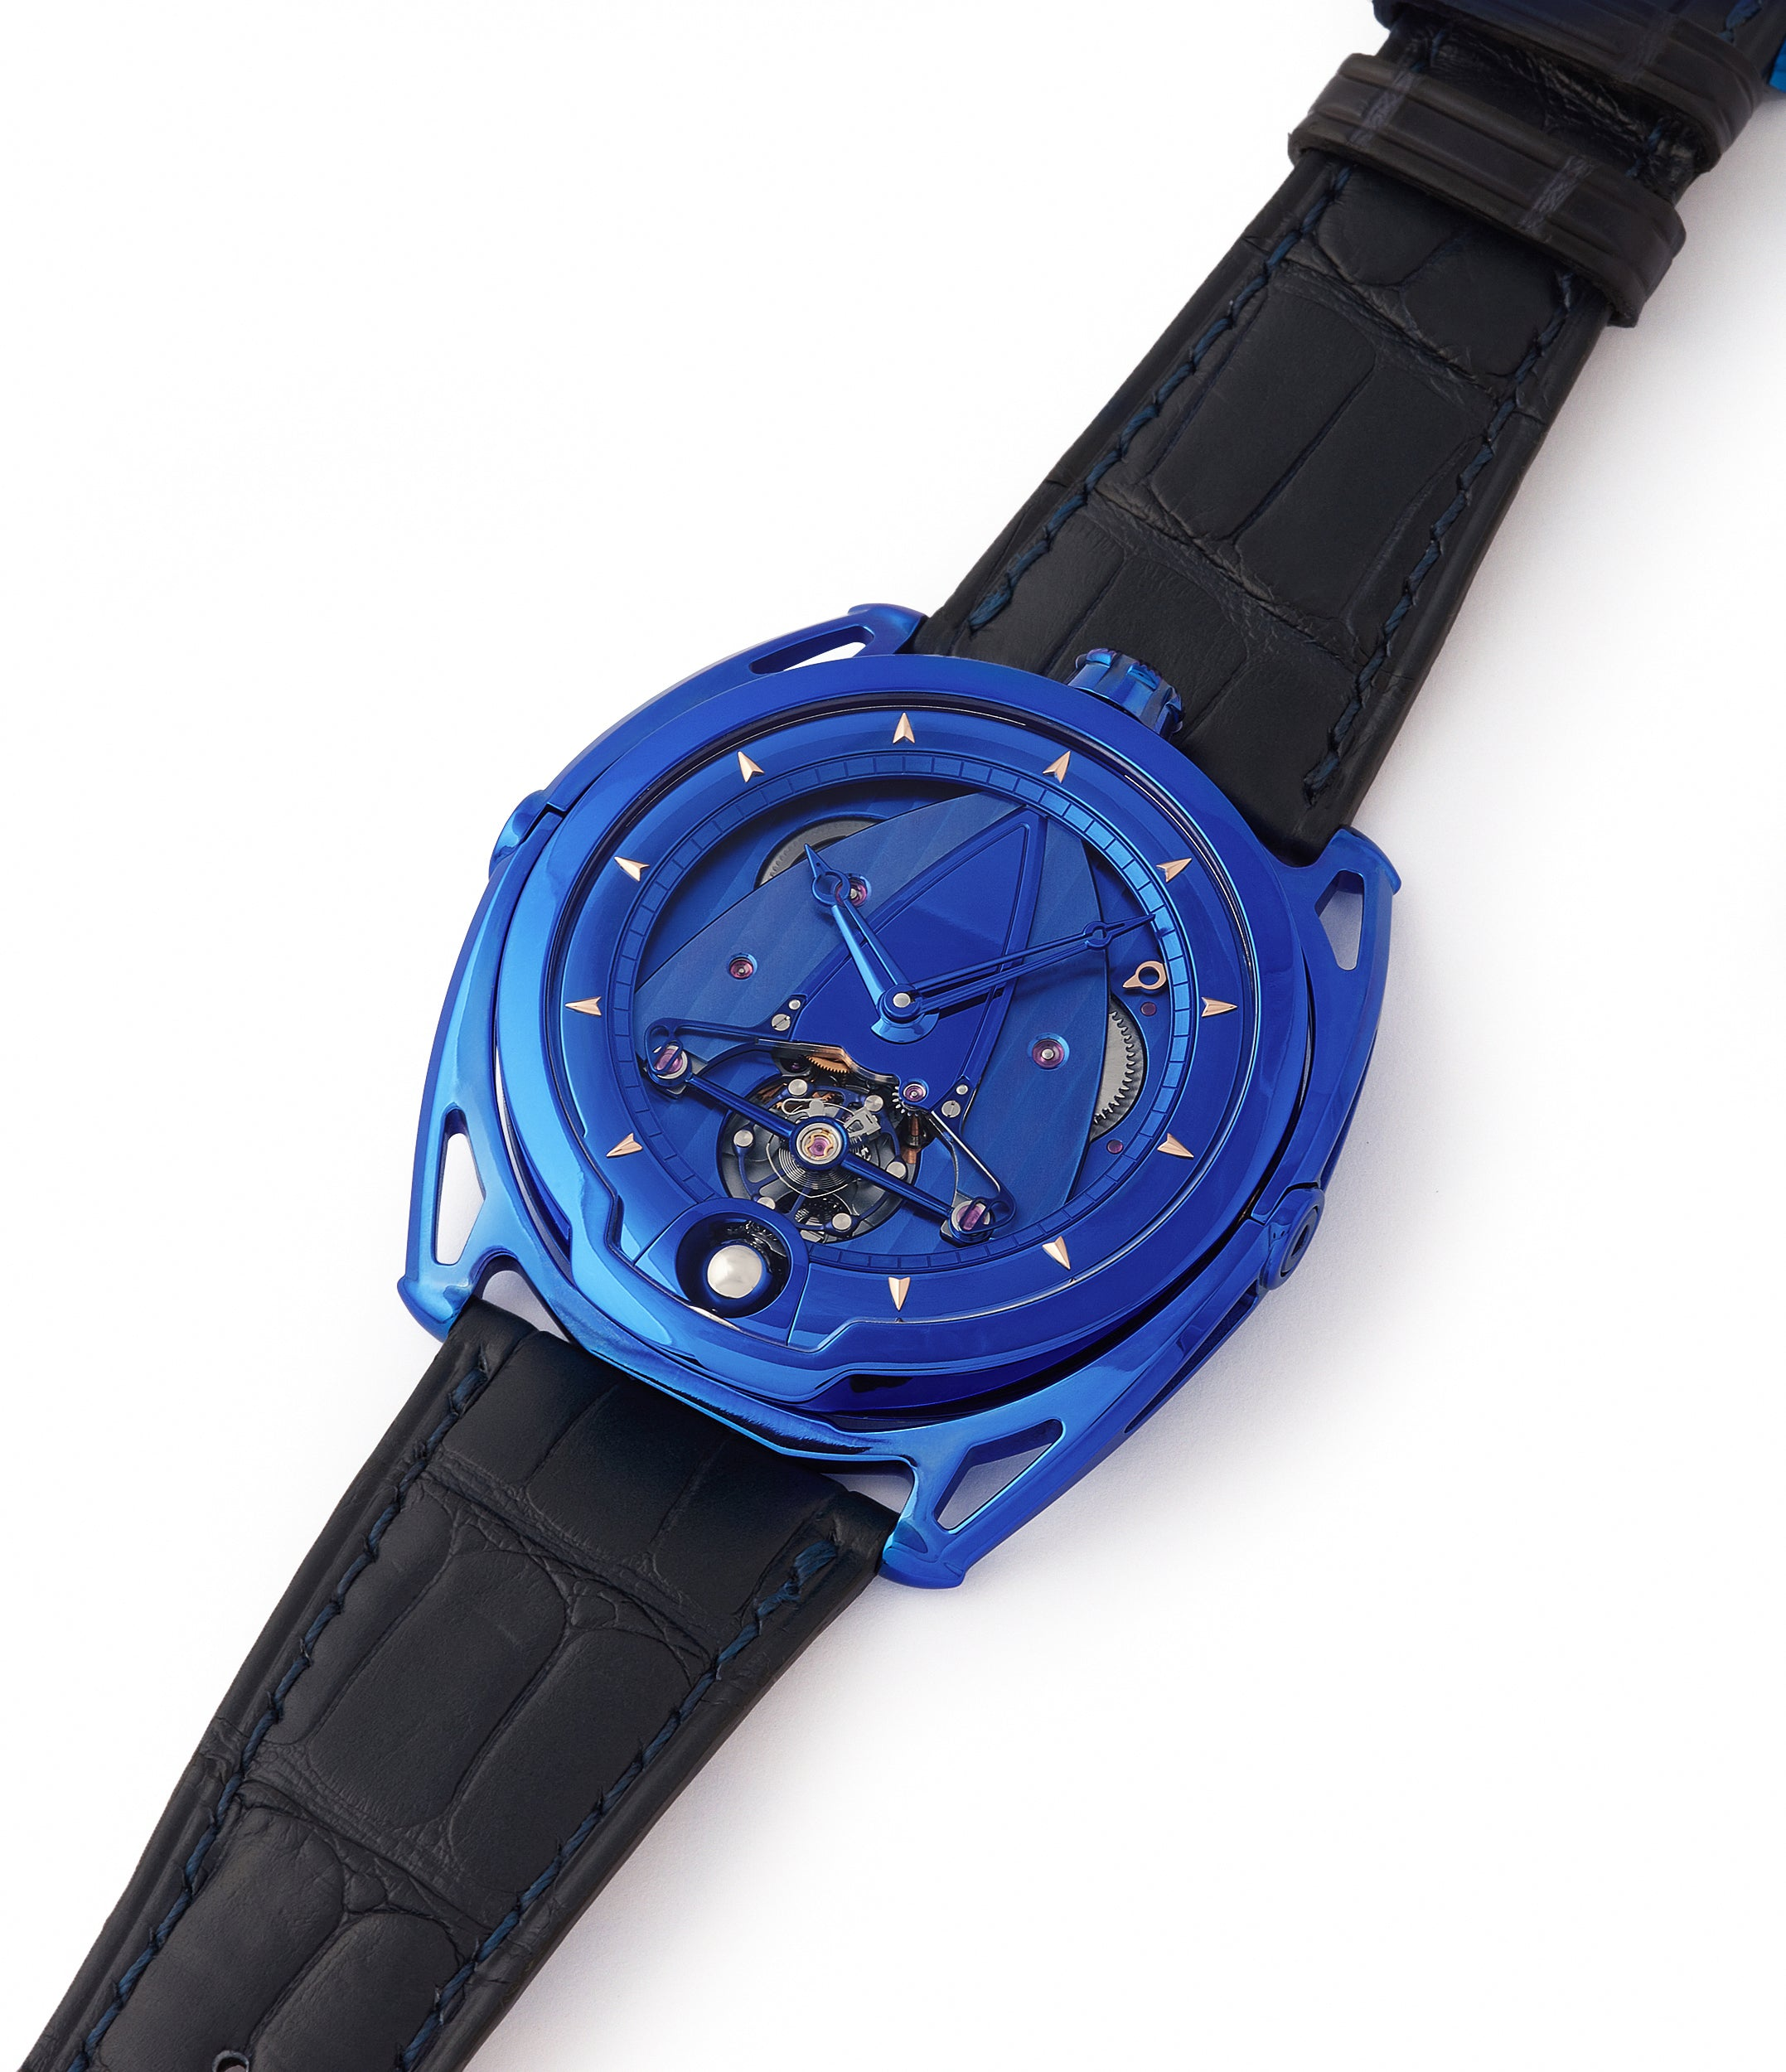 for sale De Bethune DB28 Kind of Blue titanium rare limited edition independent watchmaker at A Collected Man London UK specilaist of rare watches